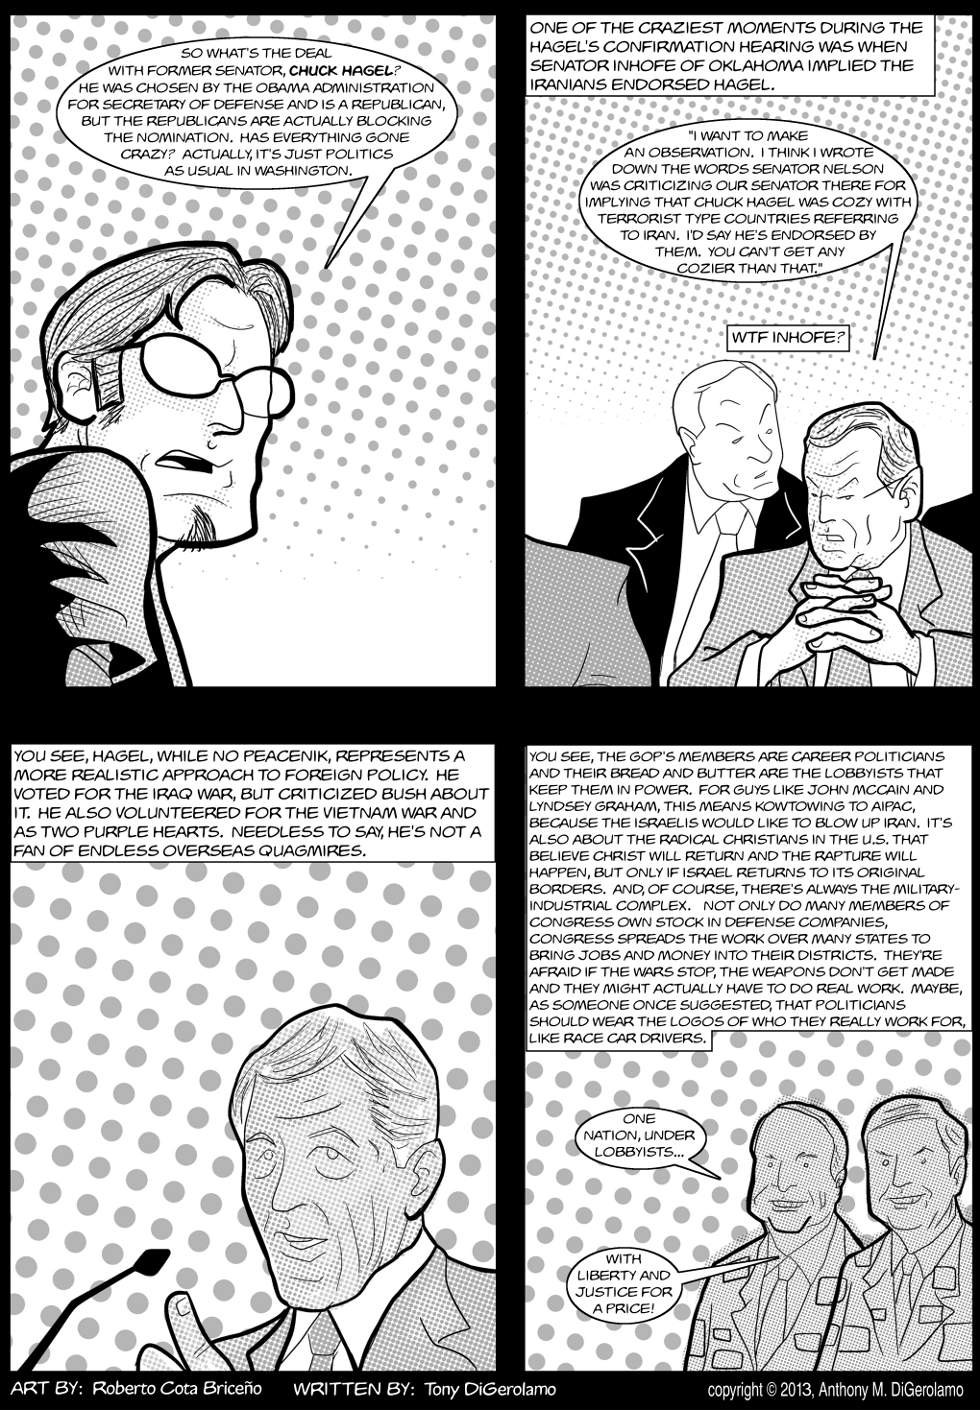 The Antiwar Comic: The Hagel Kerfuffle